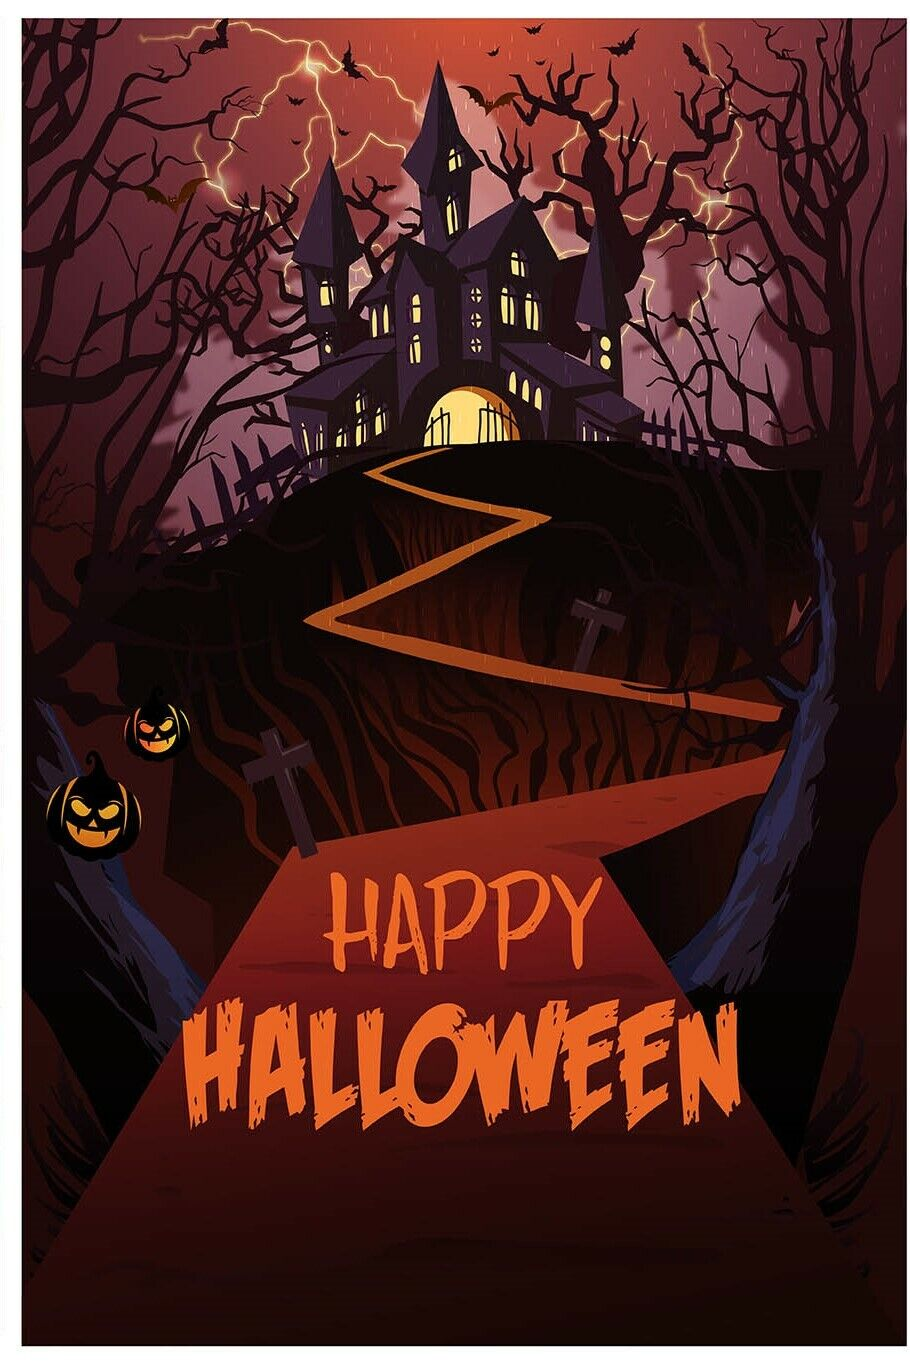 Happy Halloween Garden Flag Outdoor Banner 12x18 2-Sided Hea